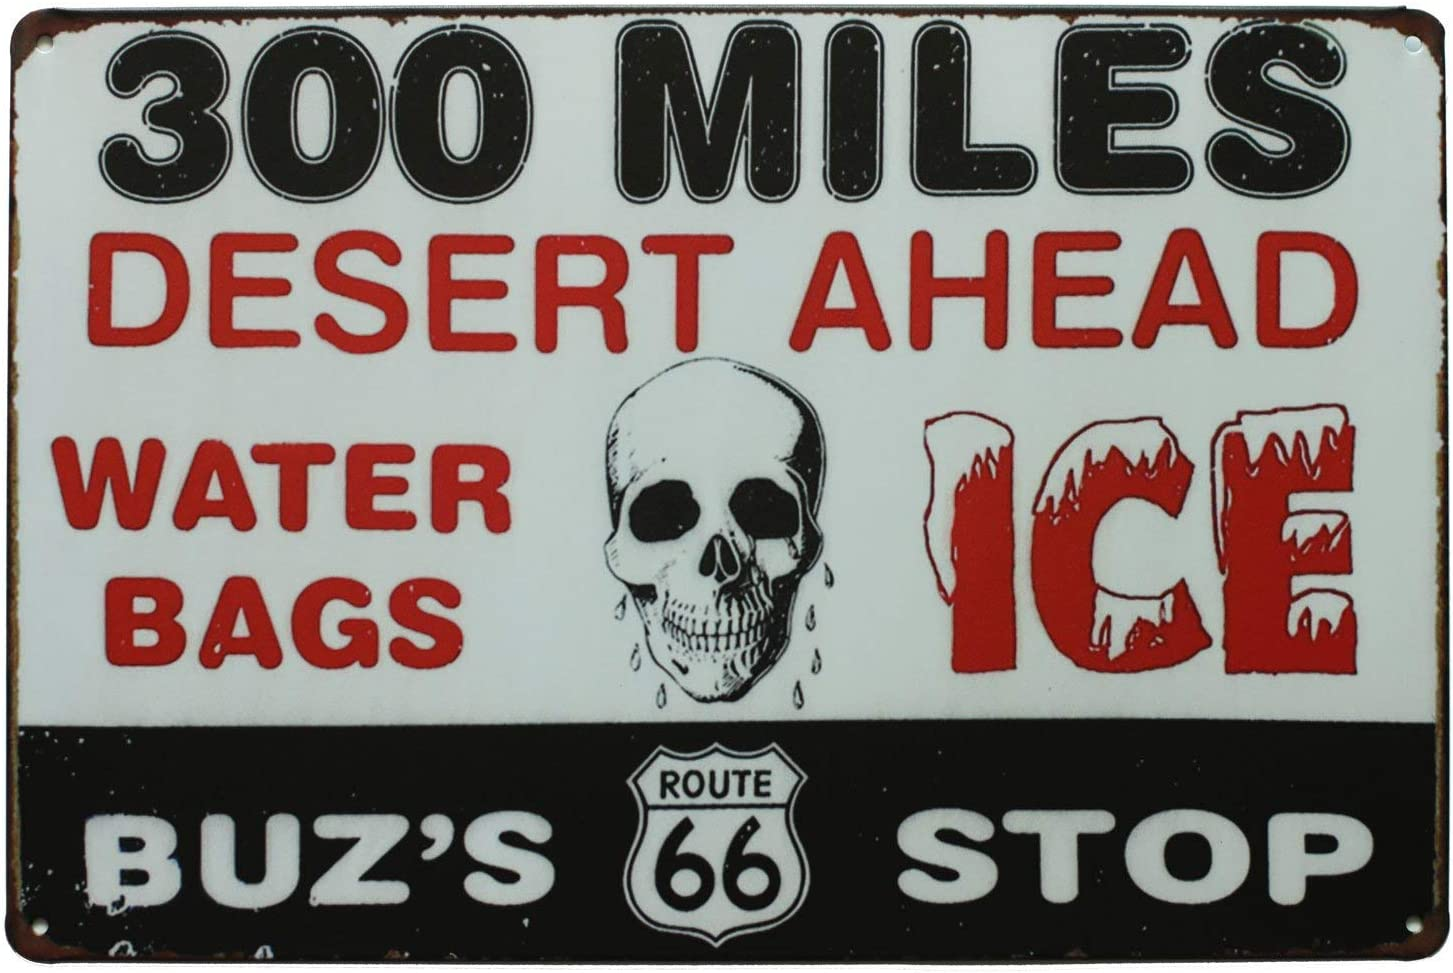 Balter 300 Miles Desert Ahead Water Bags Ice, Metal Retro Tin Sign Antique Plaque Poster Living Room Bar Pub Home Classic Vintage Aluminum for Wall Decor 8x12 Inch